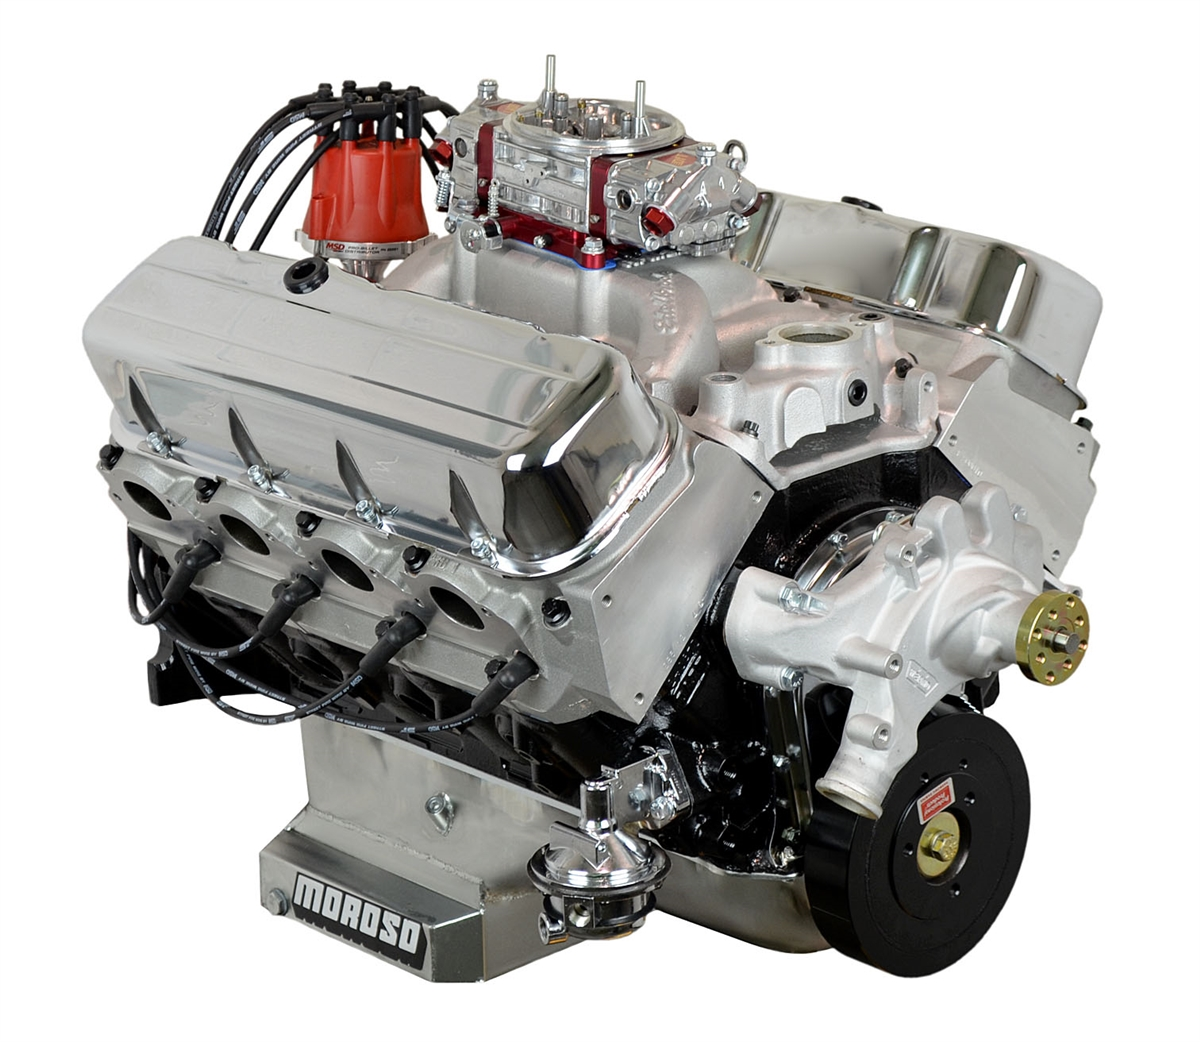 Chevy 540 complete engine 660 hp